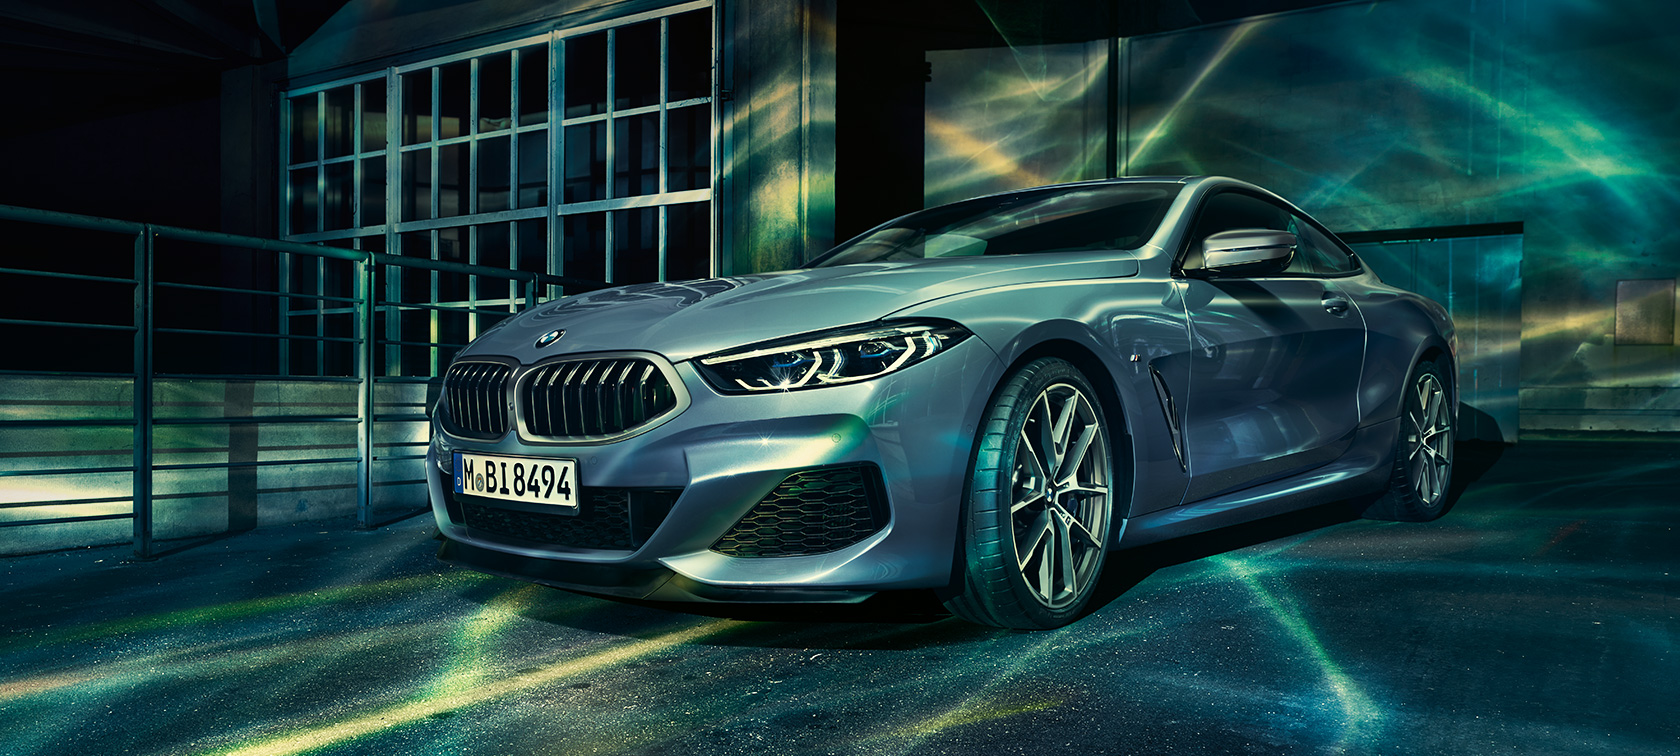 The 8 The Luxury Sports Car Of Bmw Bmw Me Com